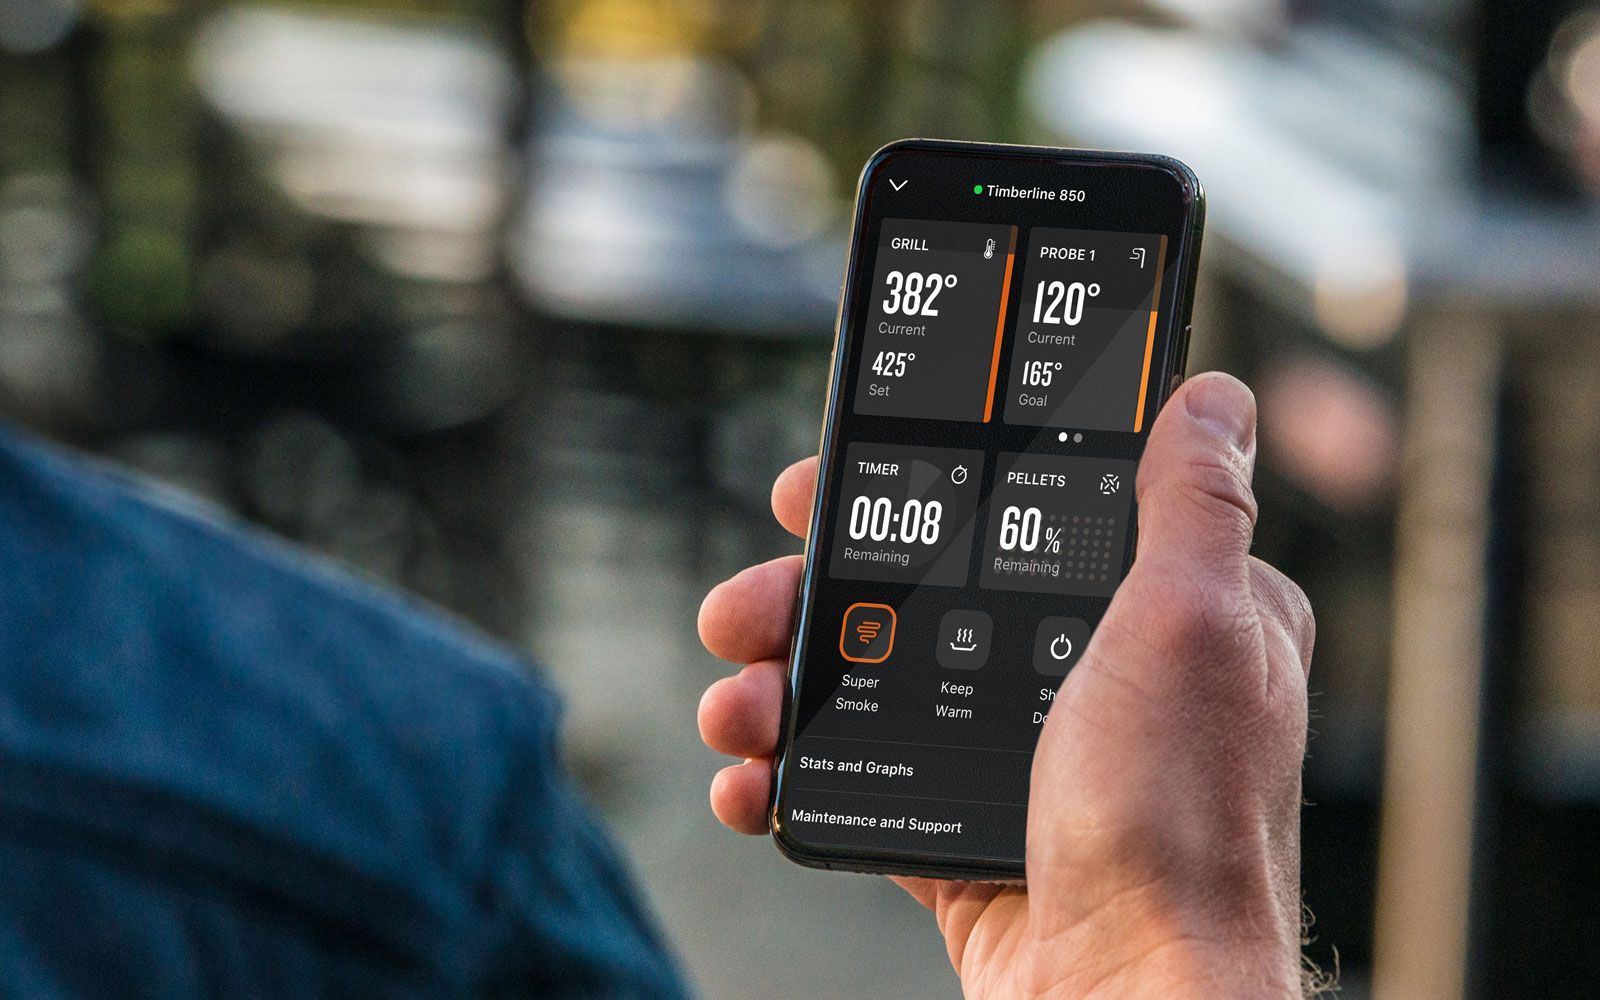 The Traeger app lets the user see and control the grill from anywhere.